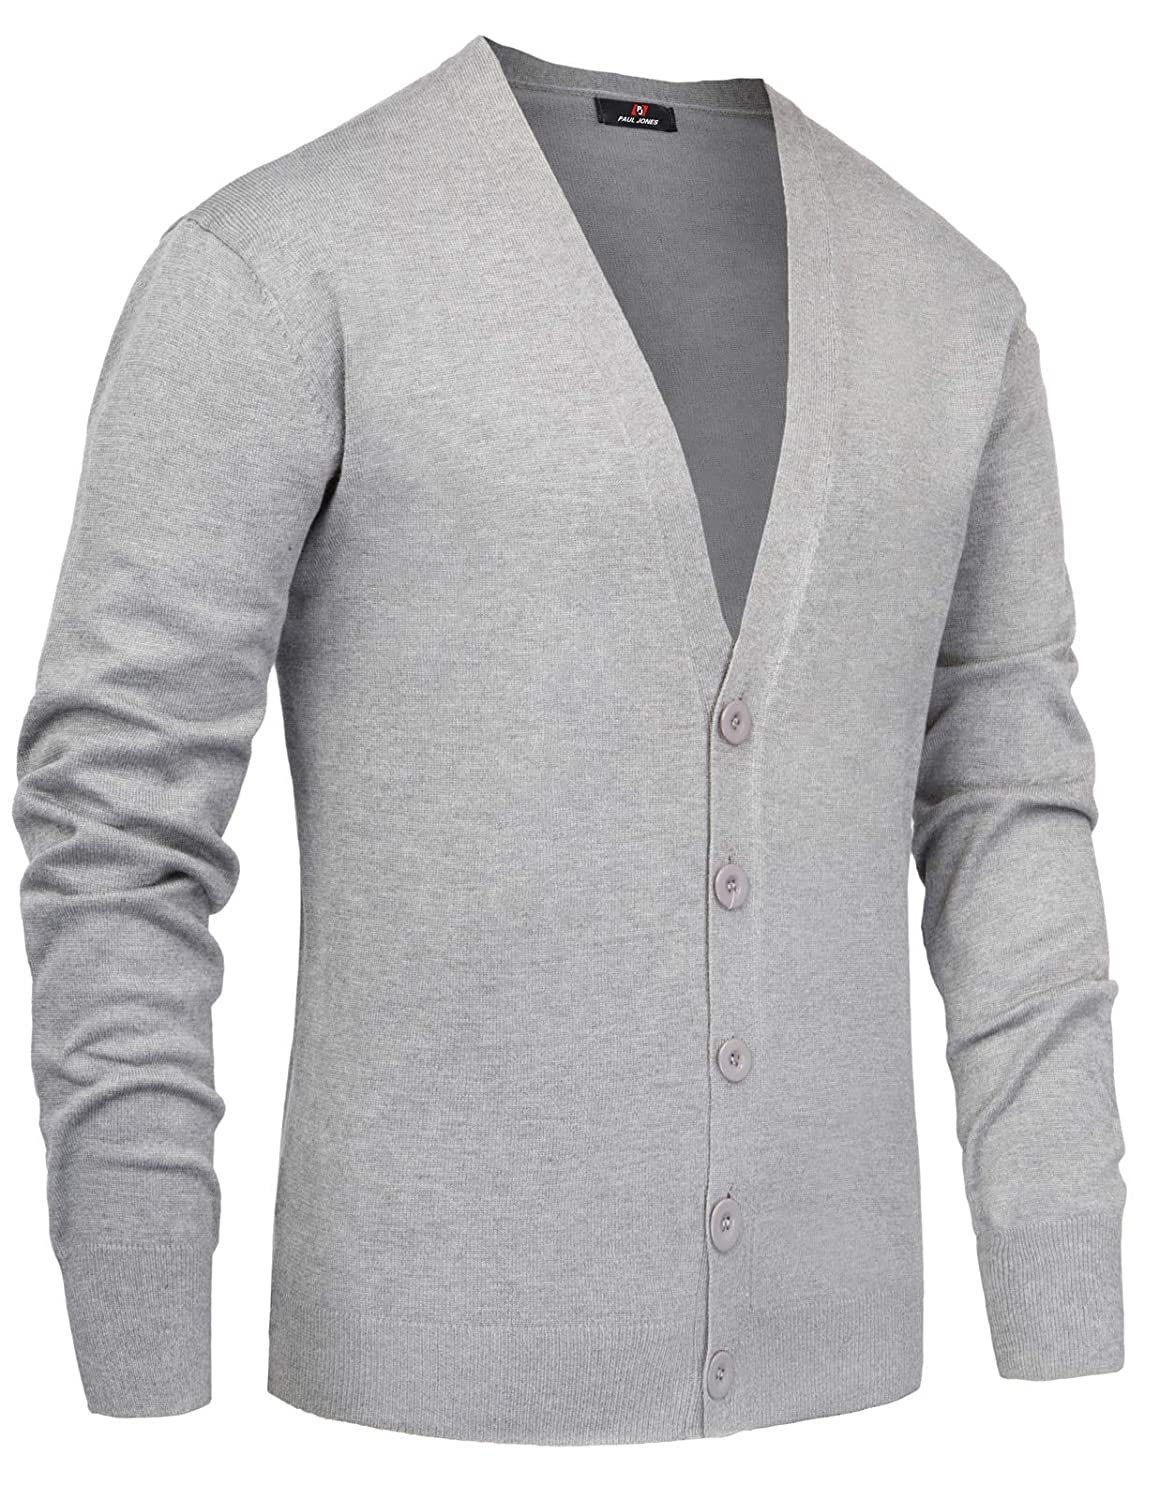 fa8584e131 Paul Jones Mens Casual Stand Collar Cable Knitted Button Down Cardigan  Sweater at Amazon Men s Clothing store